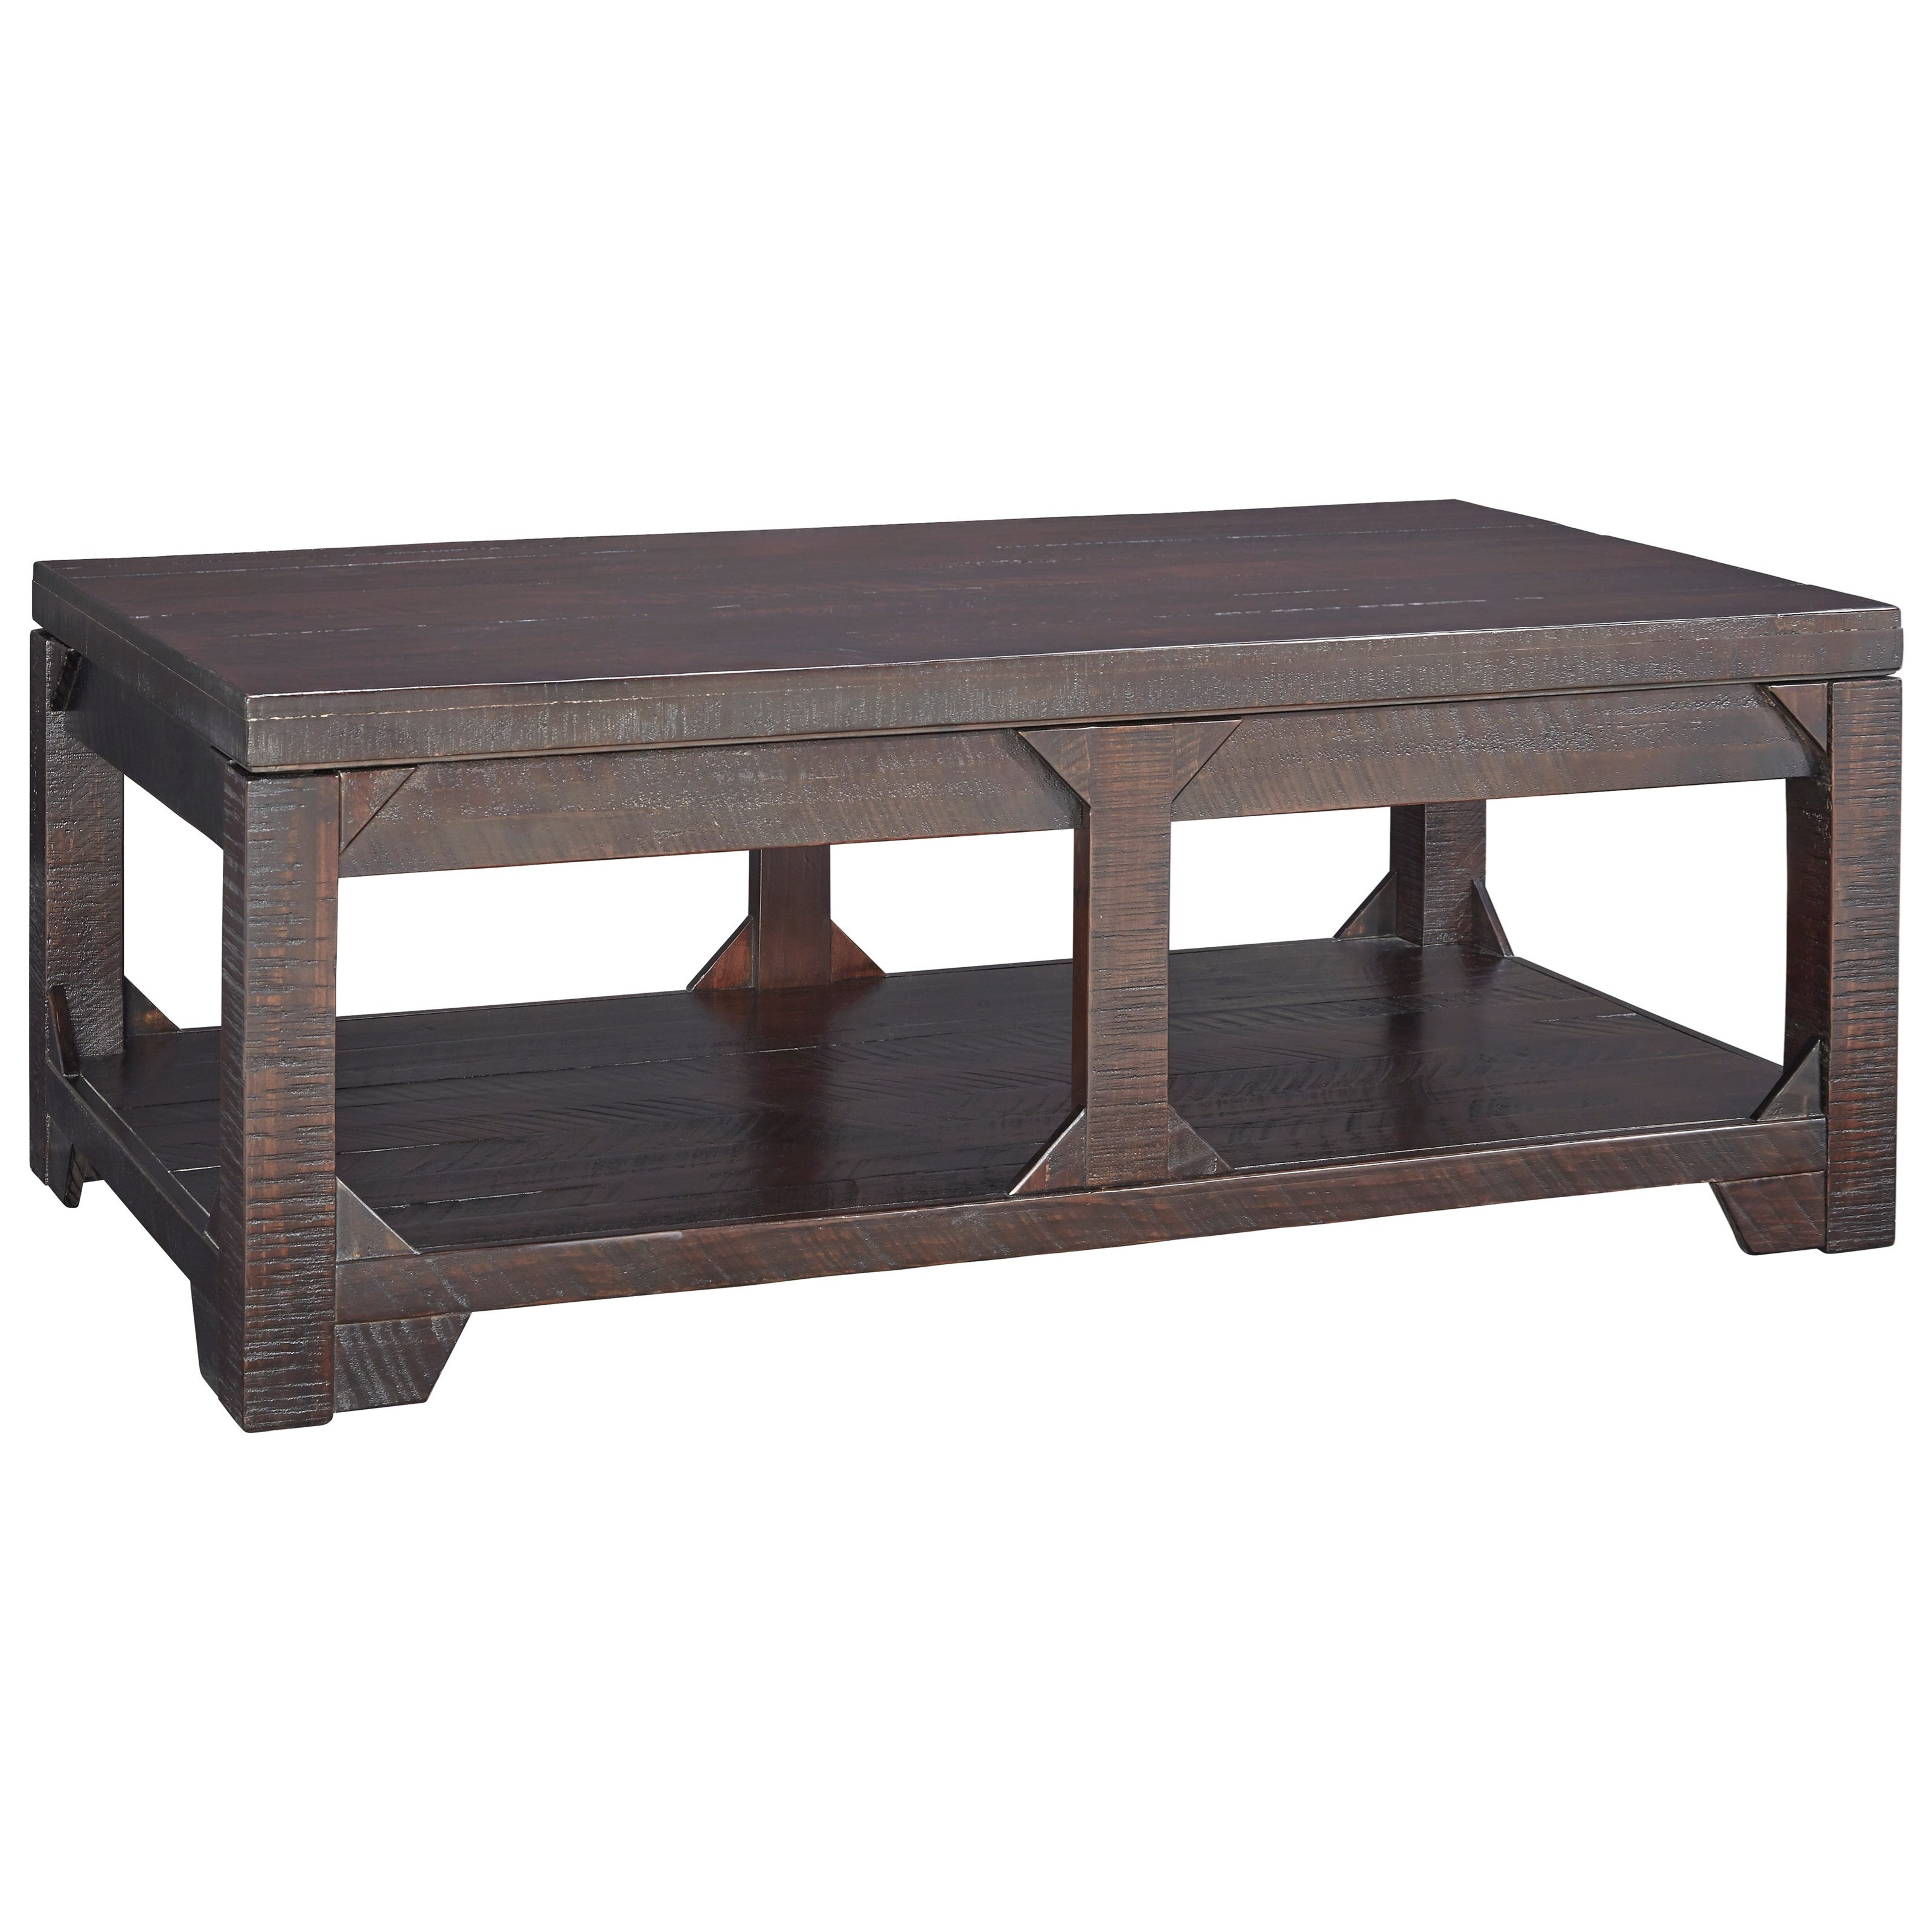 Ashley Signature Design Rogness T745 9 Rustic Lift Top Cocktail Table With Shelf Dunk Bright